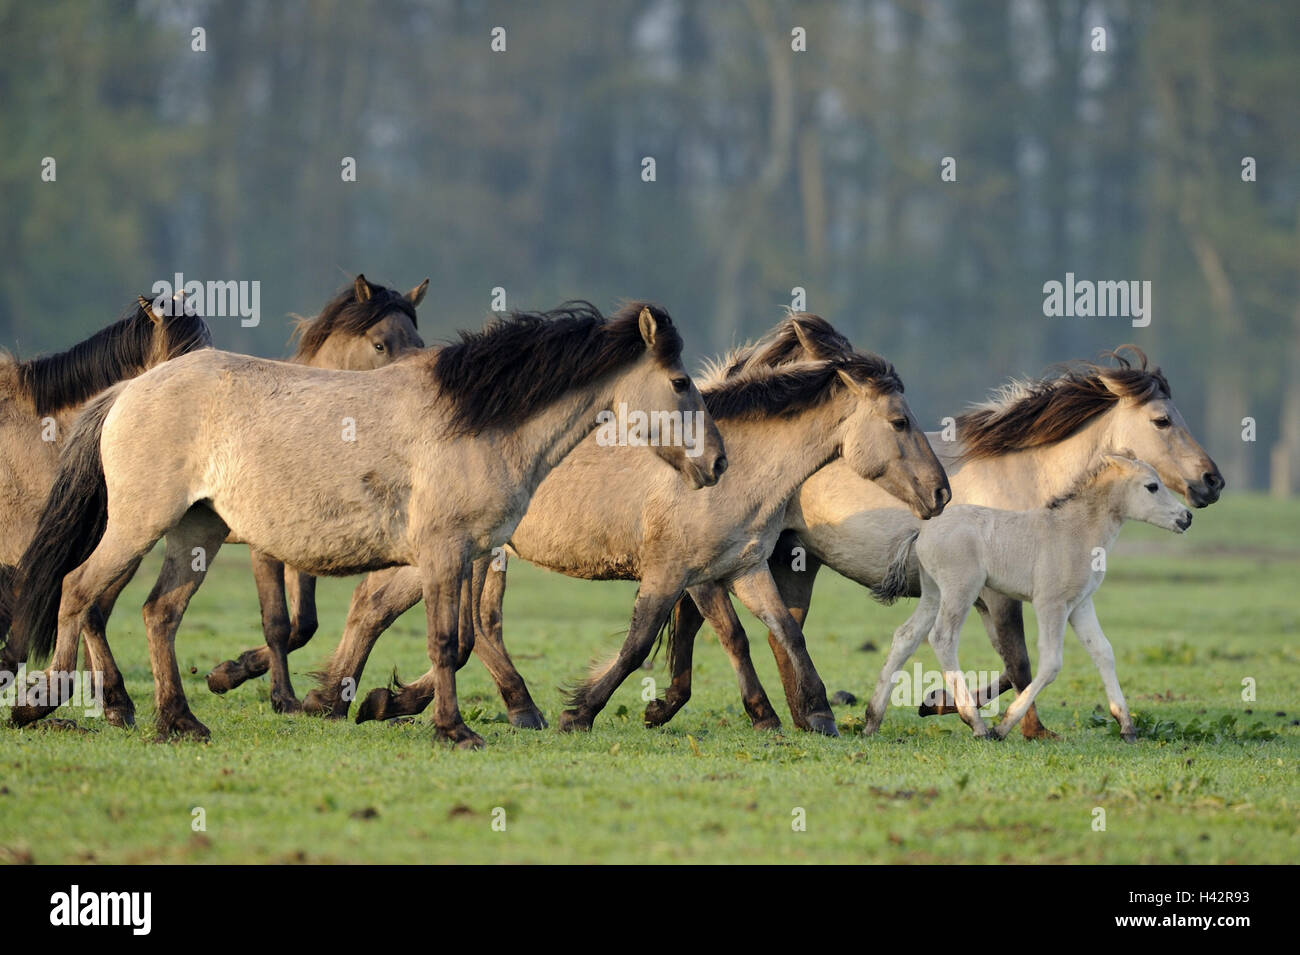 Dülmener wild horses, cookers, mares, foals, Germany, North Rhine-Westphalia, place of interest, natural monument, - Stock Image